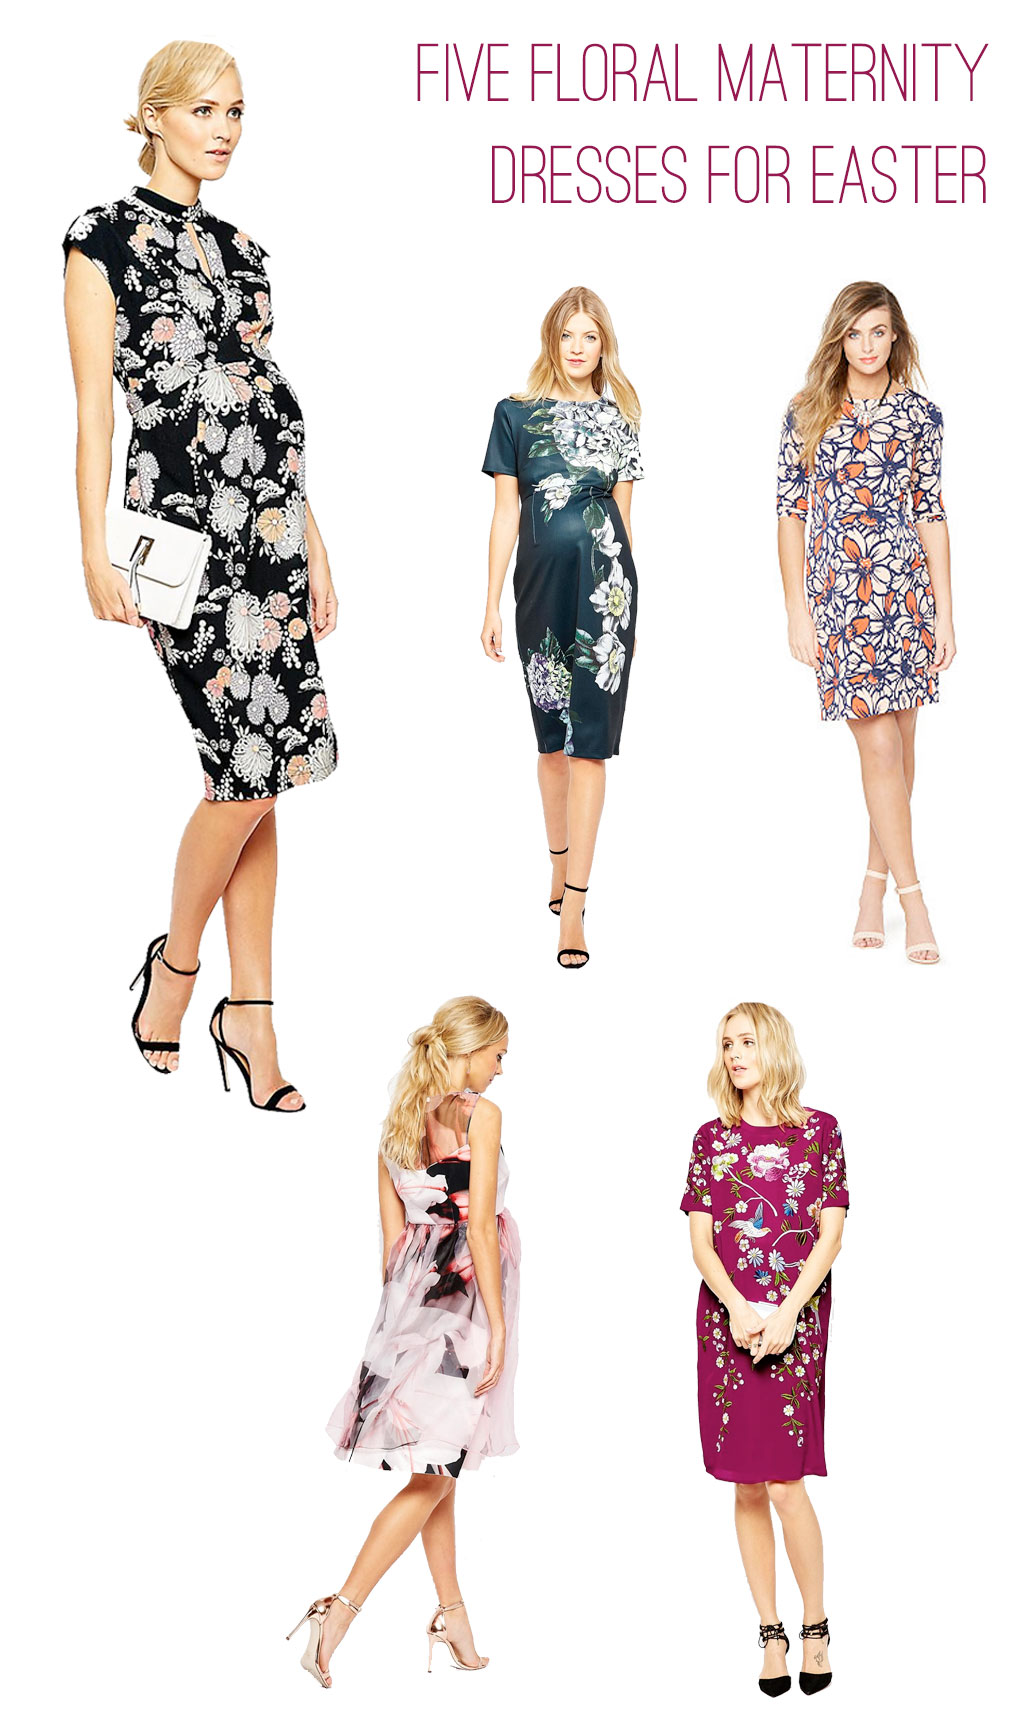 Stylish maternity dresses for Easter